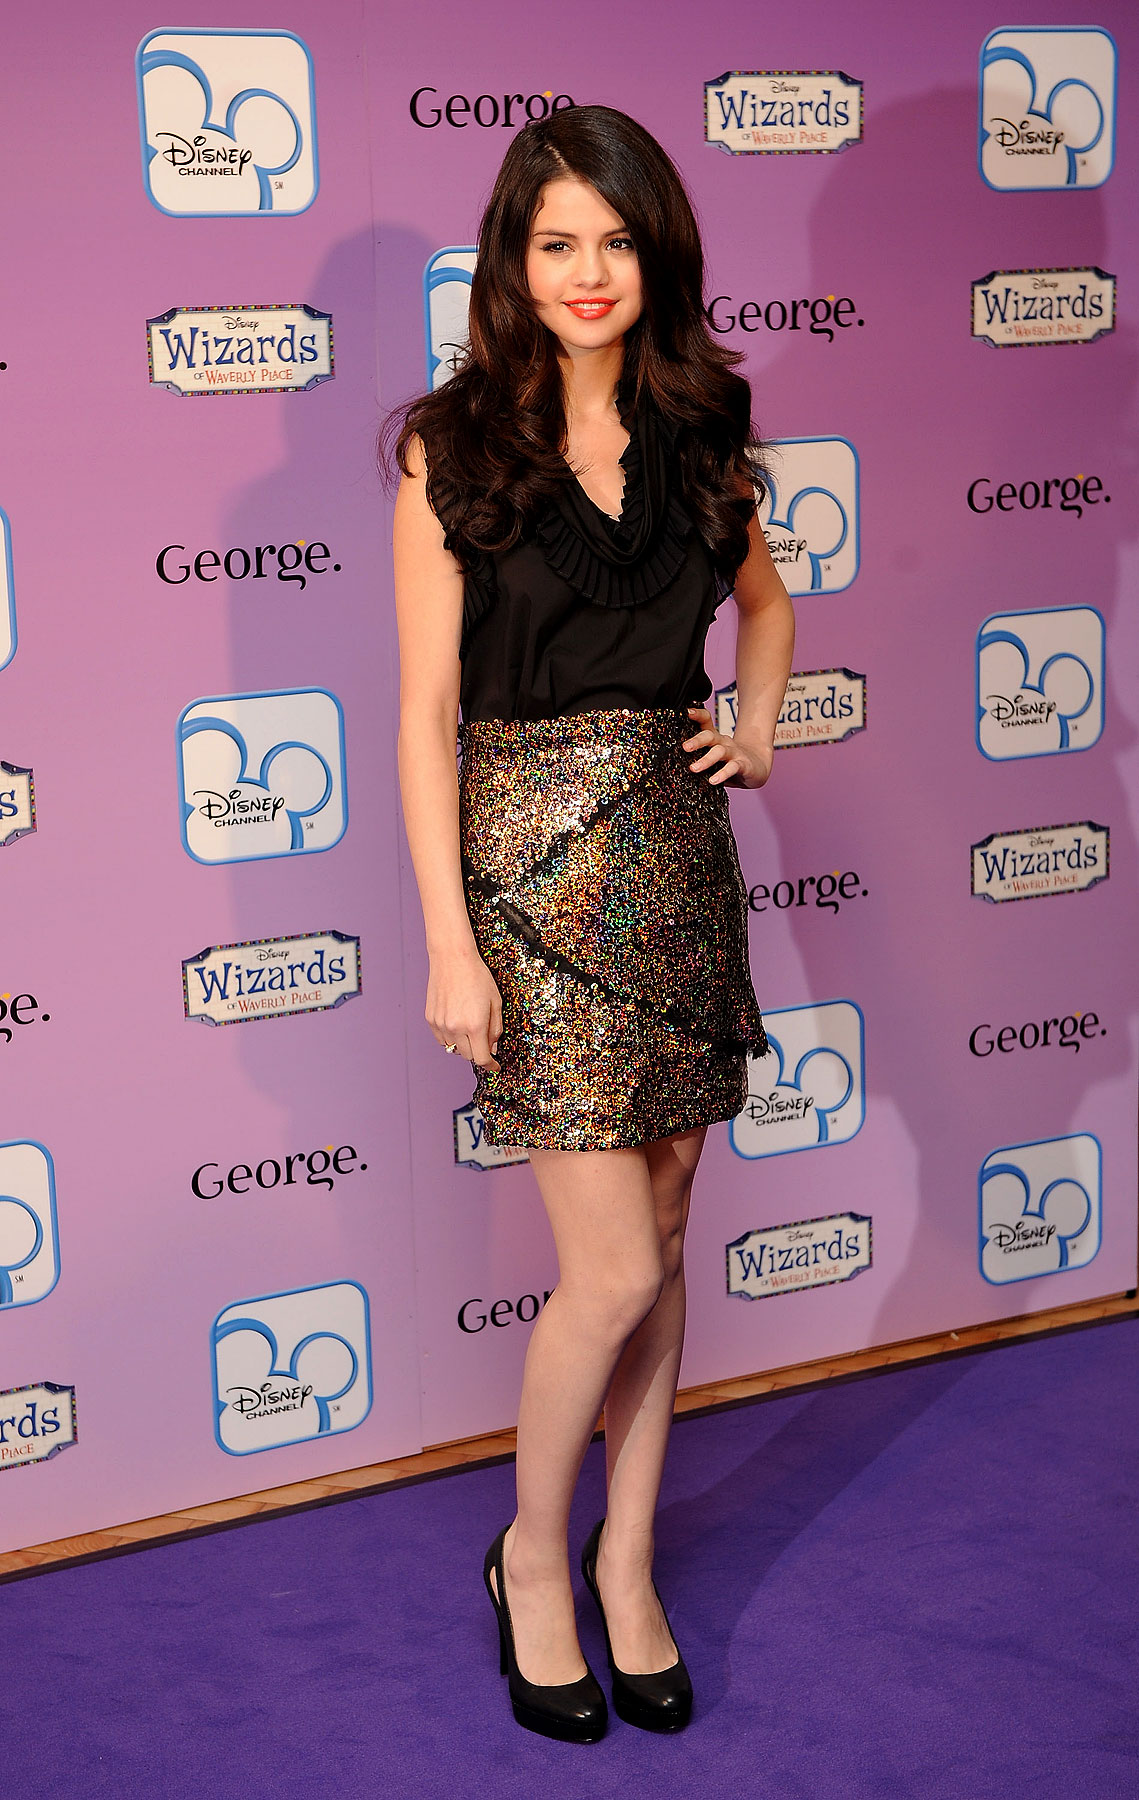 Selena Gomez Gets Magical At 'Wizards Of Waverly Place' Fashion Show (PHOTOS)